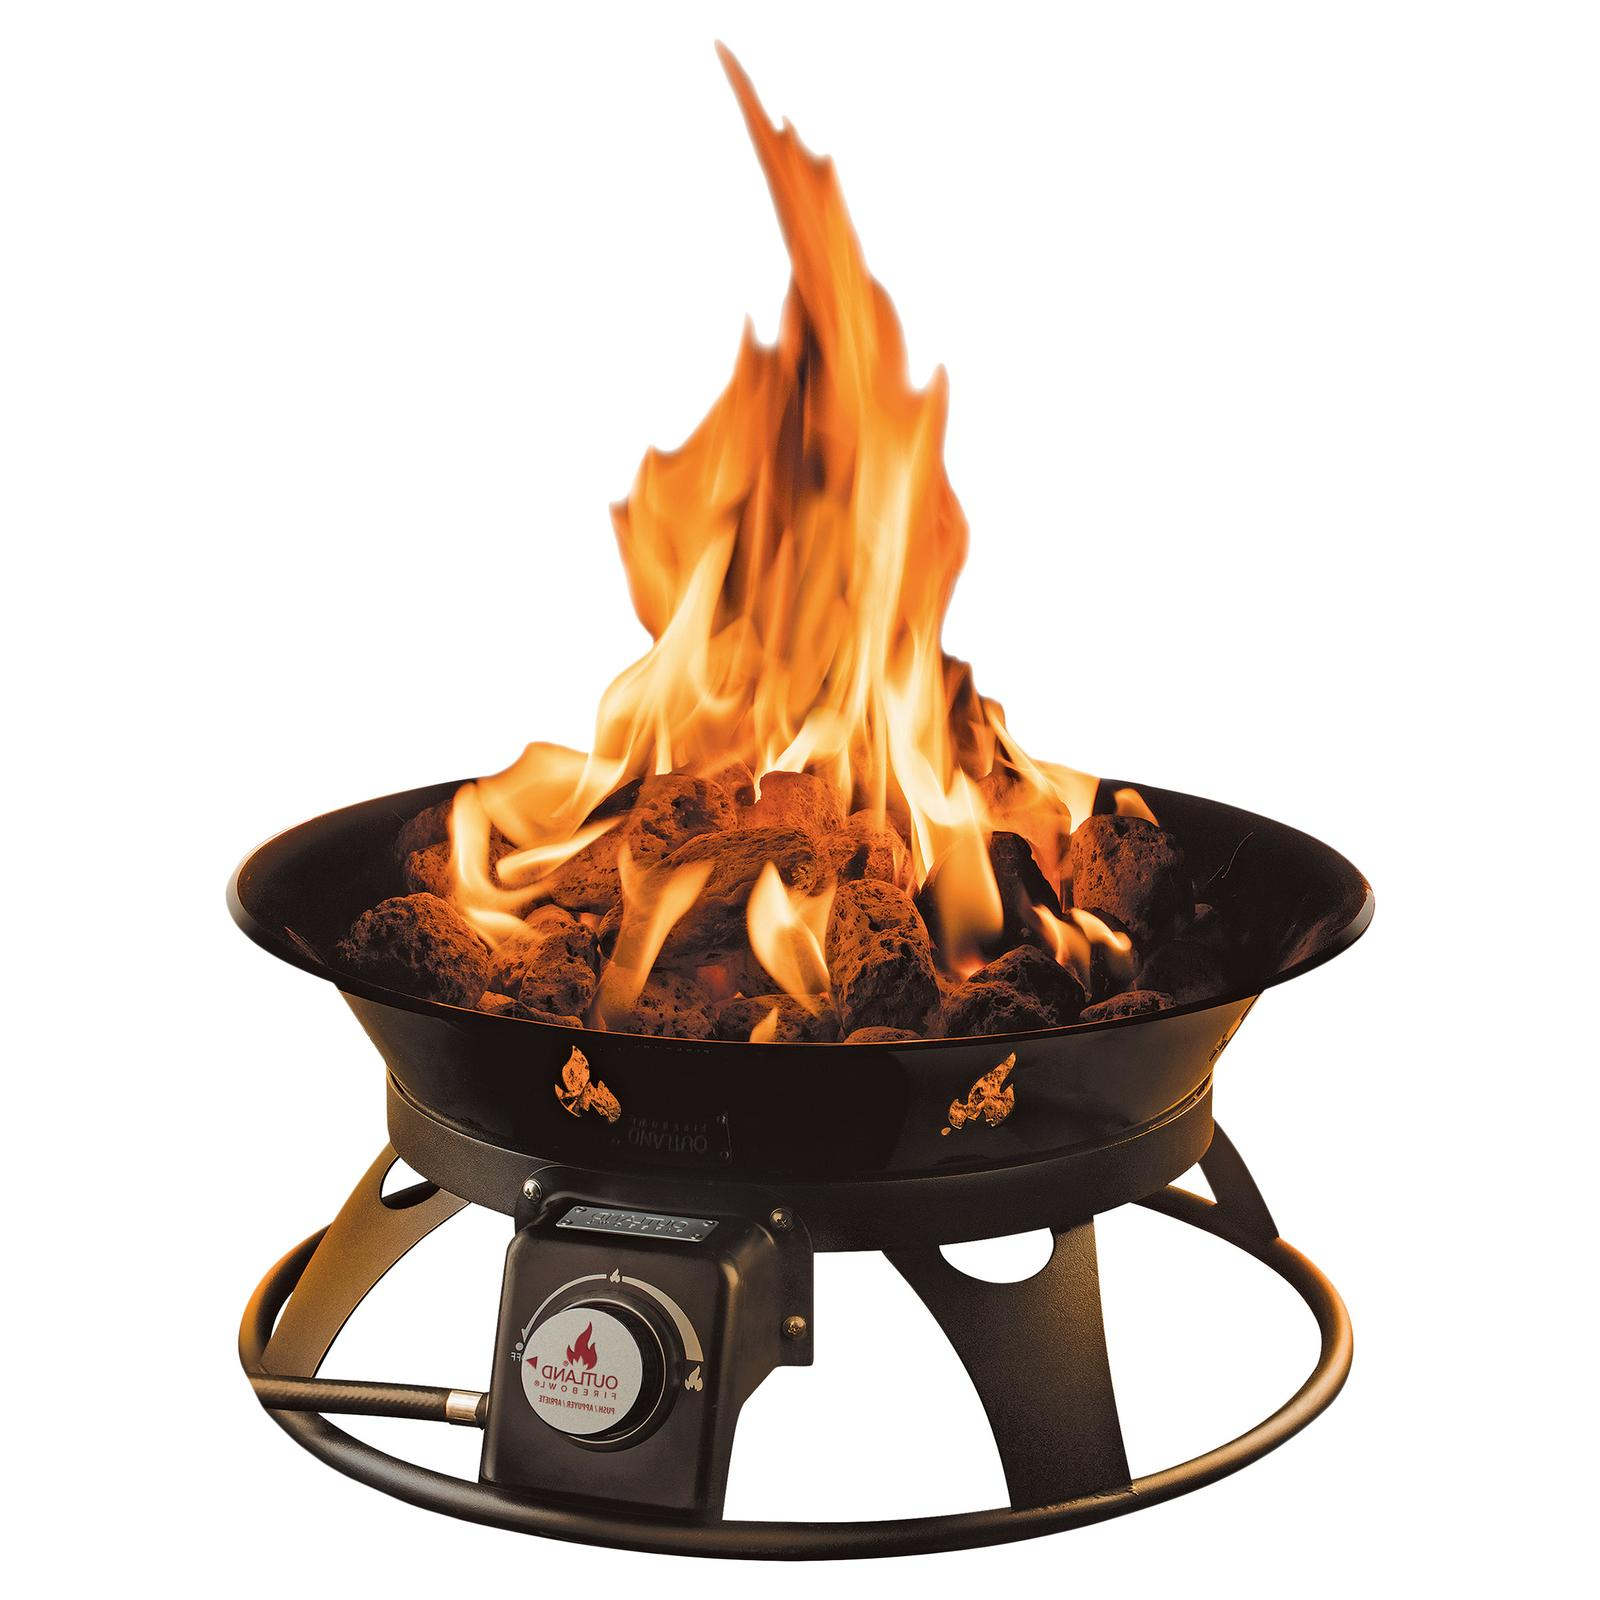 Outdoor Fire Pit Propane Gas Outland with Cover